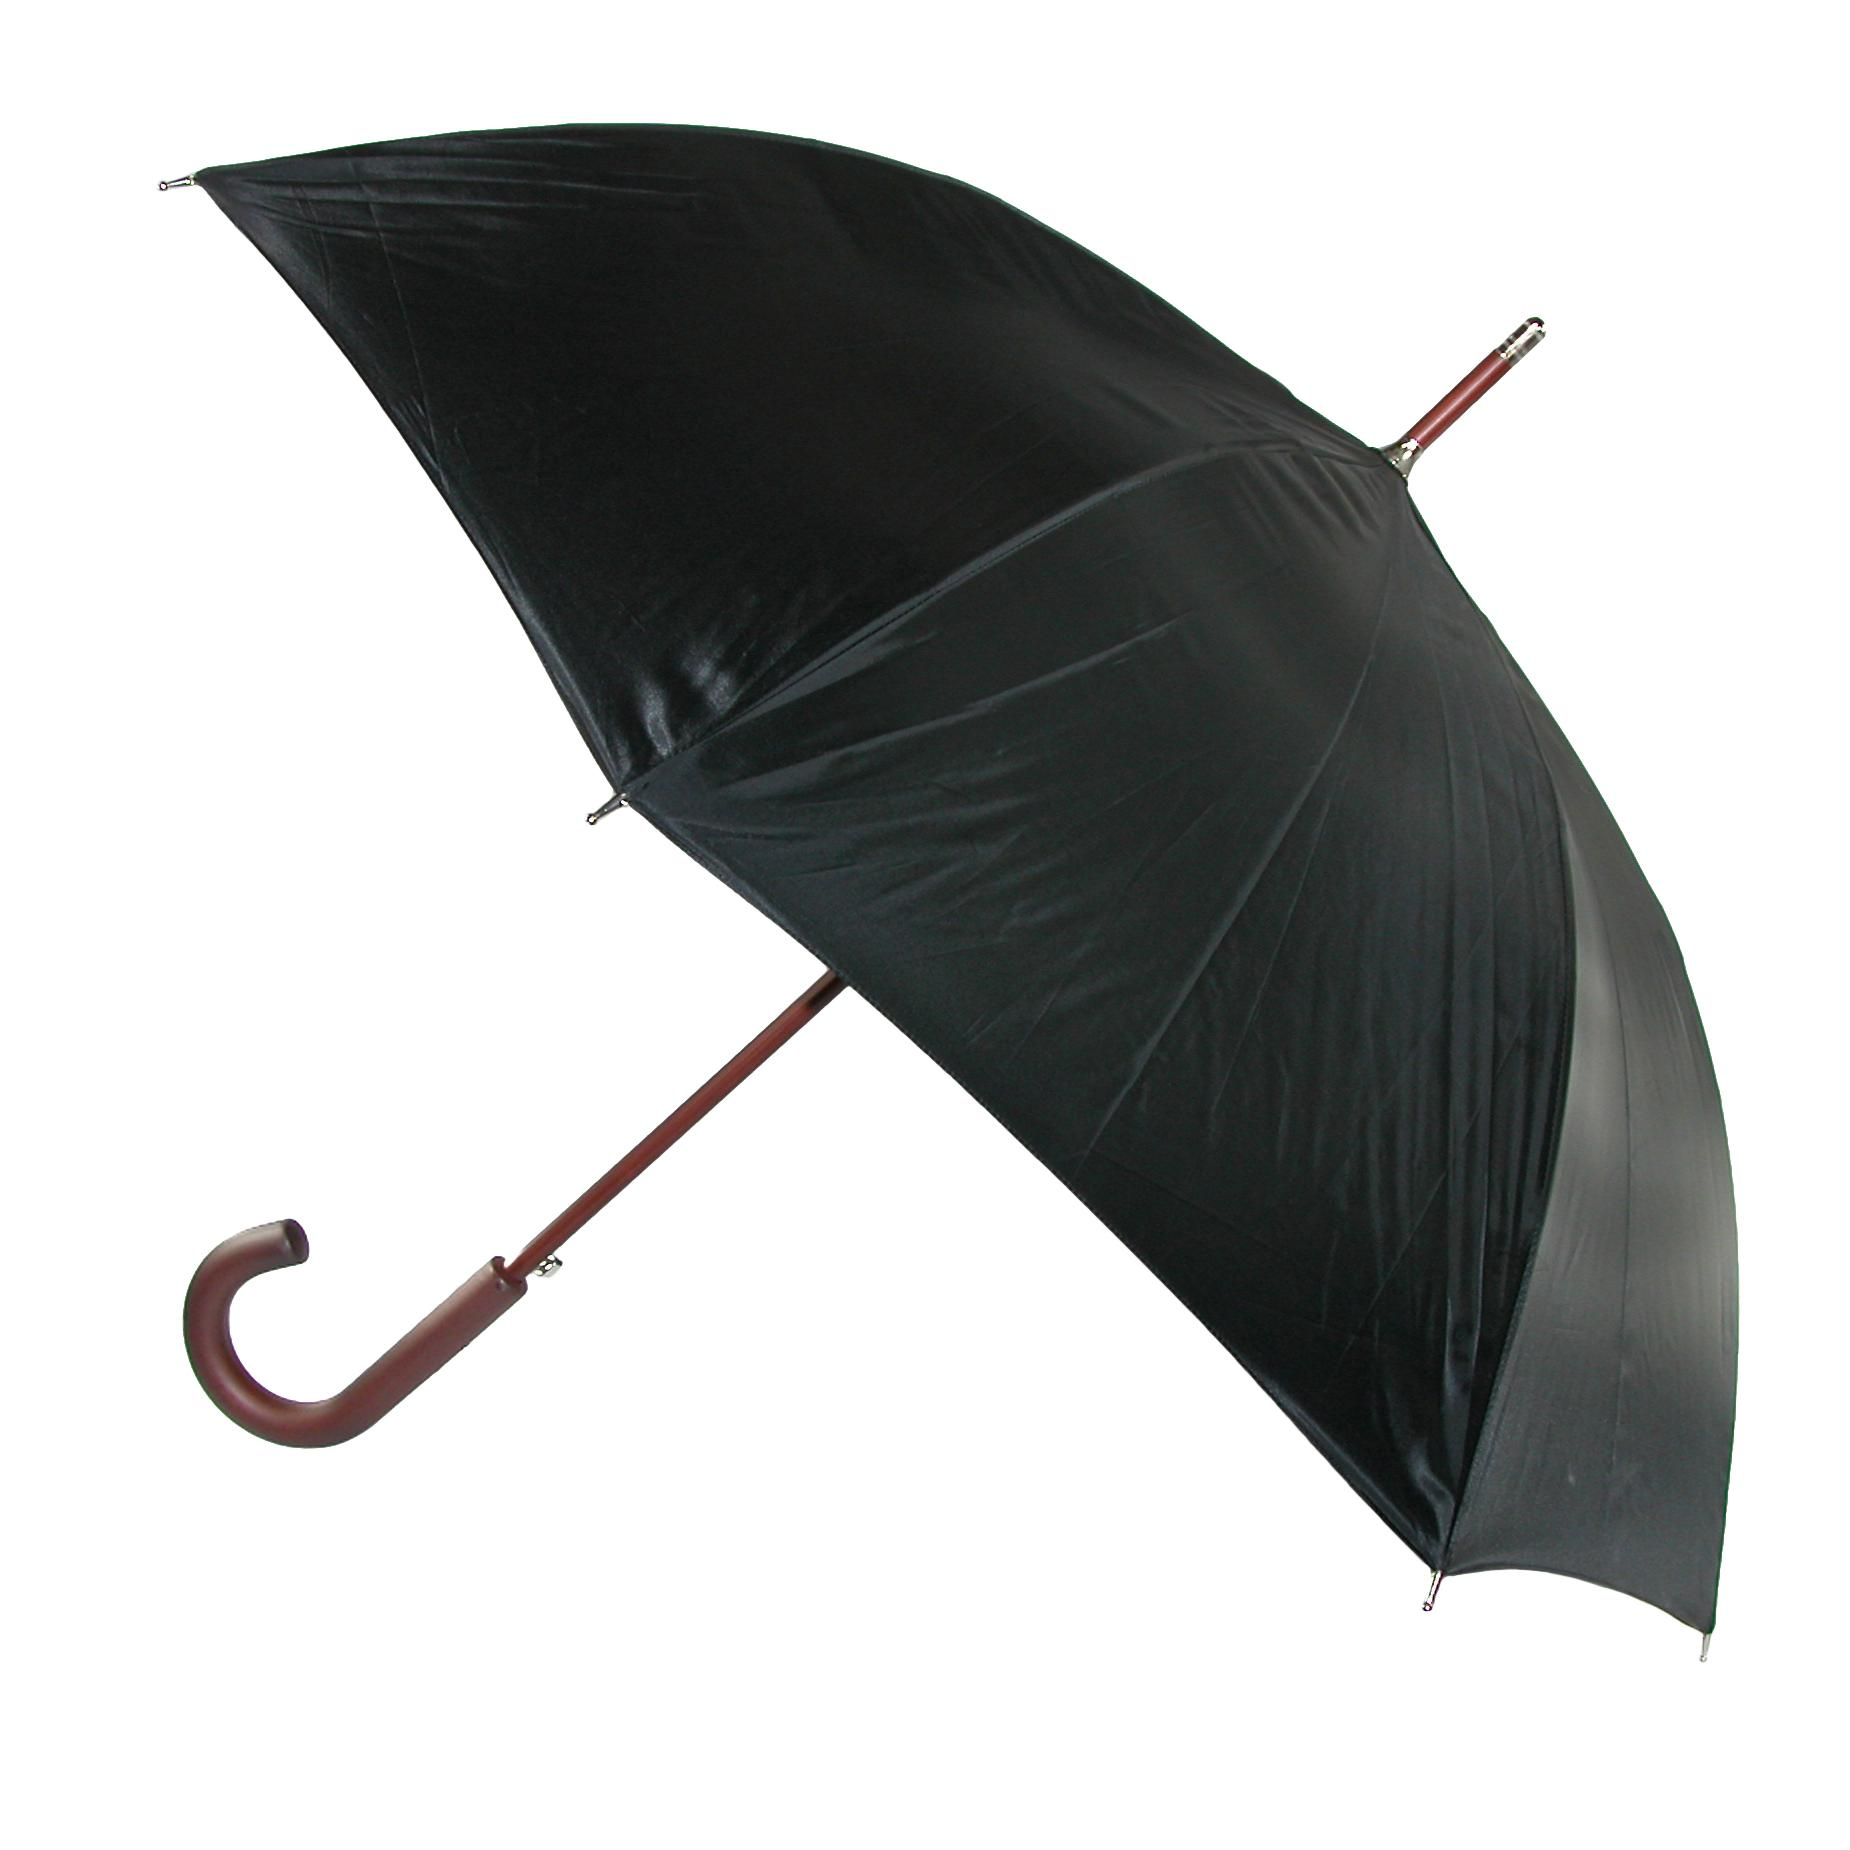 Totes_Wooden_Hook_Handle_38_Inch_Stick_Umbrella_-_Black_one_size